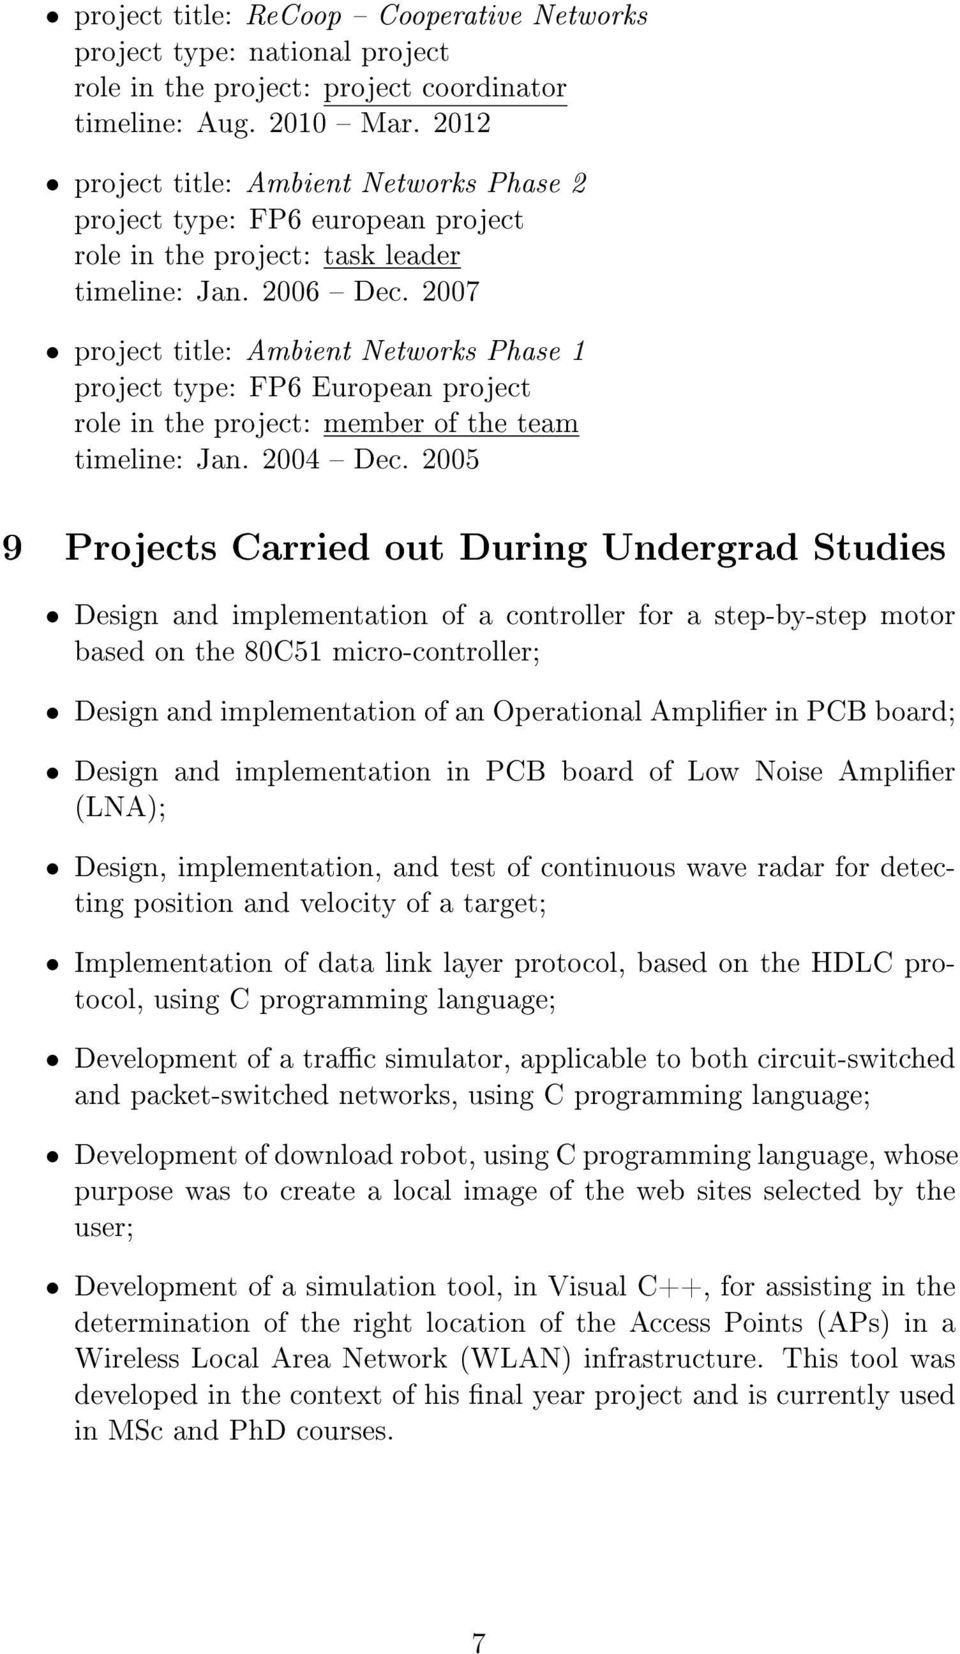 2007 project title: Ambient Networks Phase 1 project type: FP6 European project role in the project: member of the team timeline: Jan. 2004 Dec.